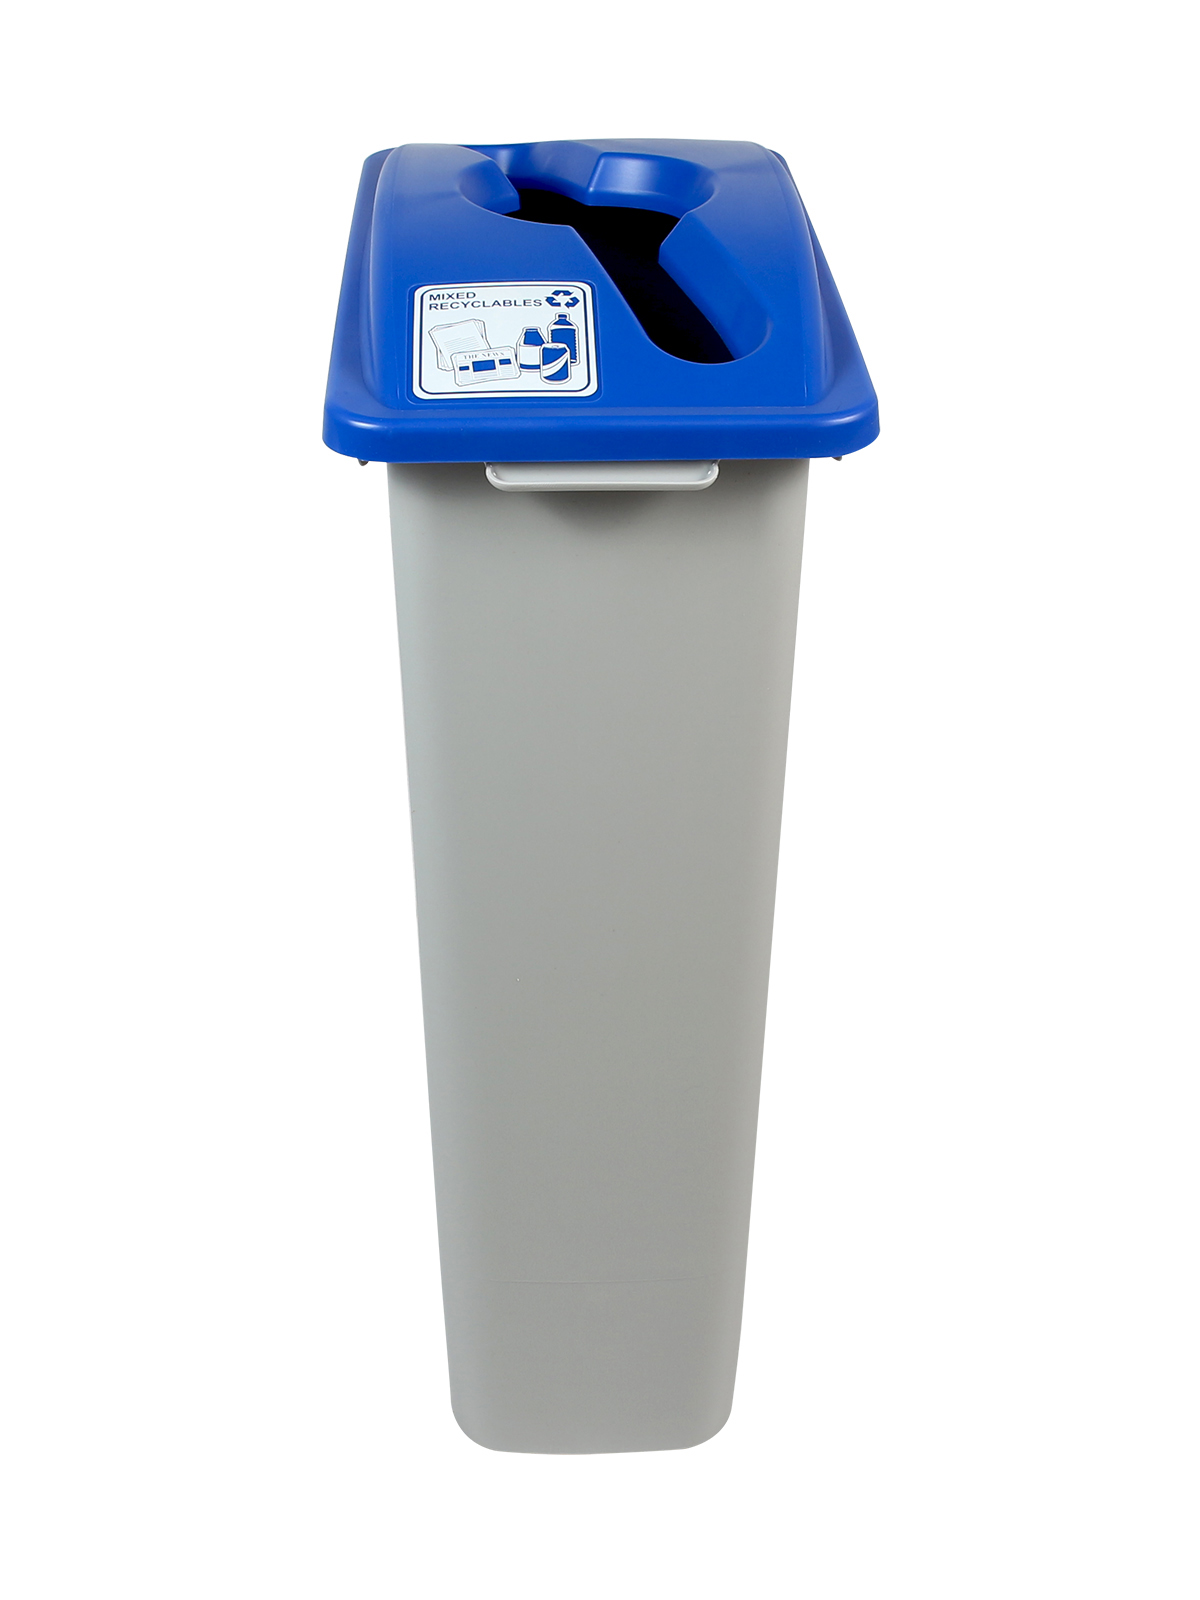 WASTE WATCHER - Single - Mixed Recyclables - Mixed - Grey-Blue